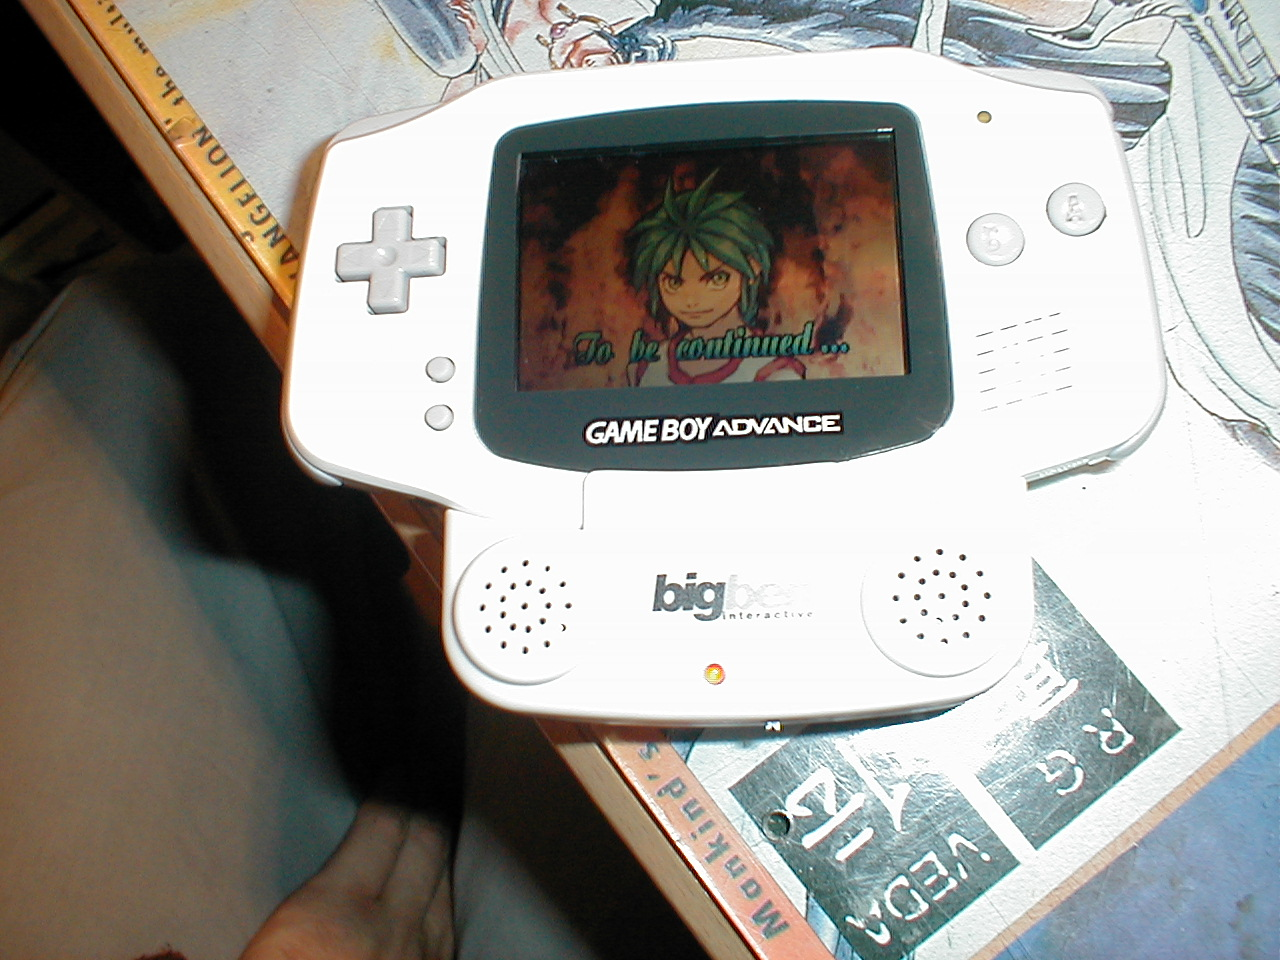 dario gameboy advance gba anime game Japanese white plastic handheld gaming device to be continued royalty